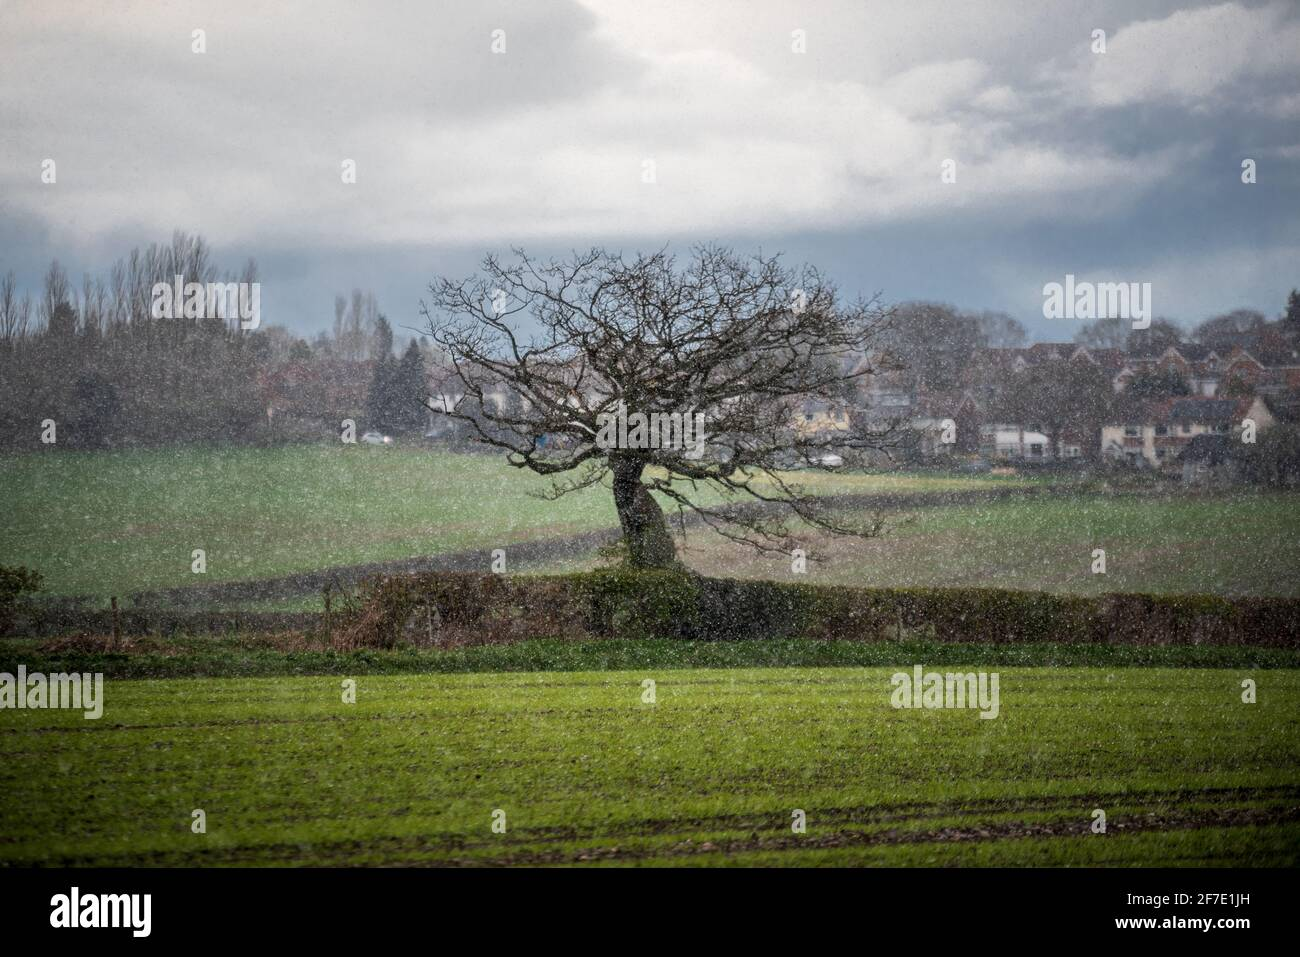 birmingham-uk-6th-april-2021-snow-fell-across-birmingham-in-an-unusual-twist-of-weather-this-afternoon-pictured-a-frosty-tree-on-farmland-in-the-pheasey-village-of-north-birmingham-credit-ryan-underwood-alamy-live-news-2F7E1JH.jpg